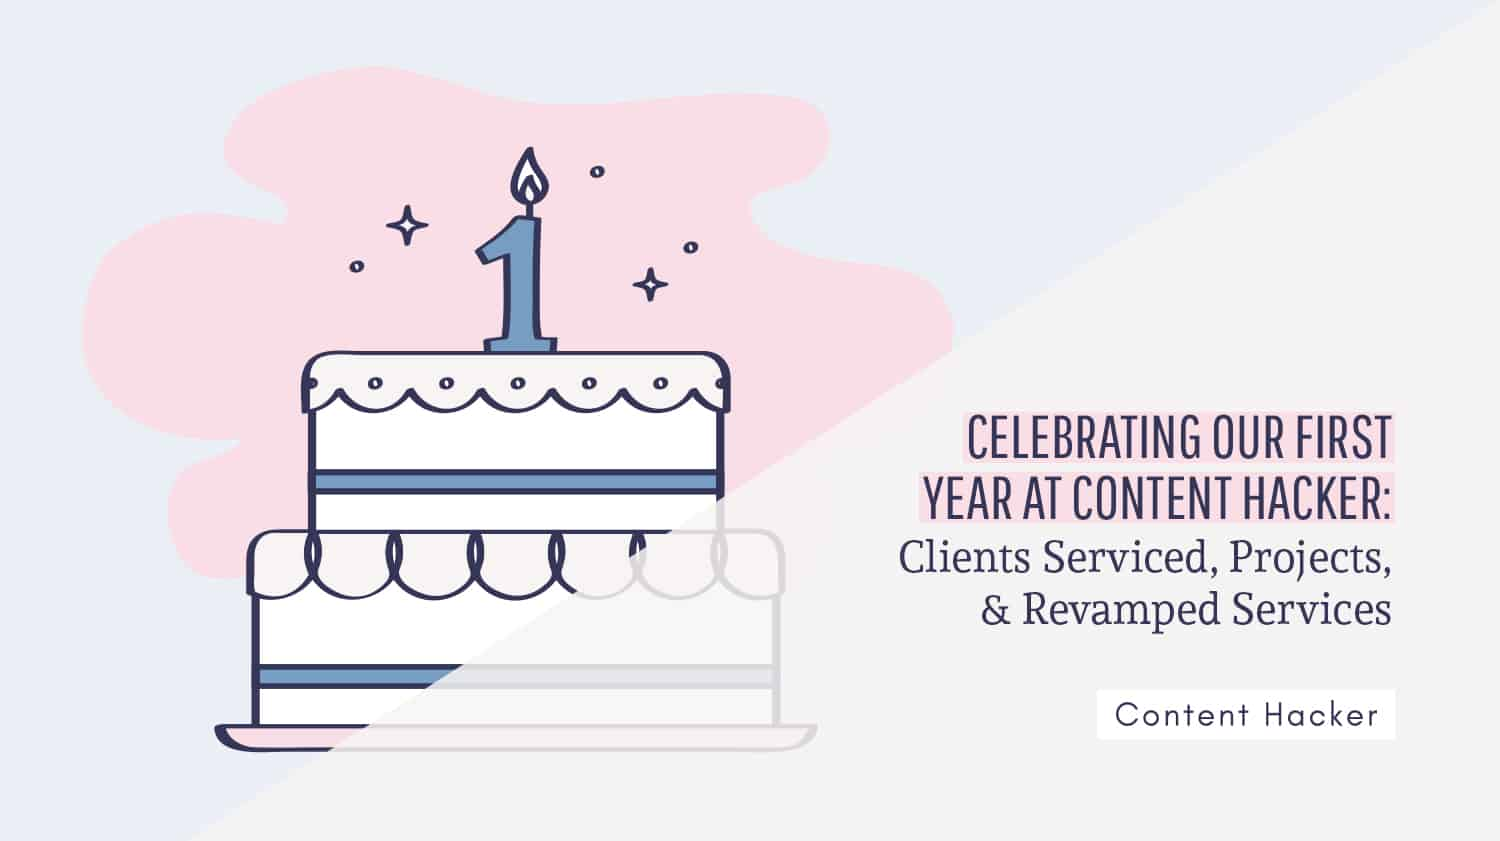 Celebrating year one at Content Hacker